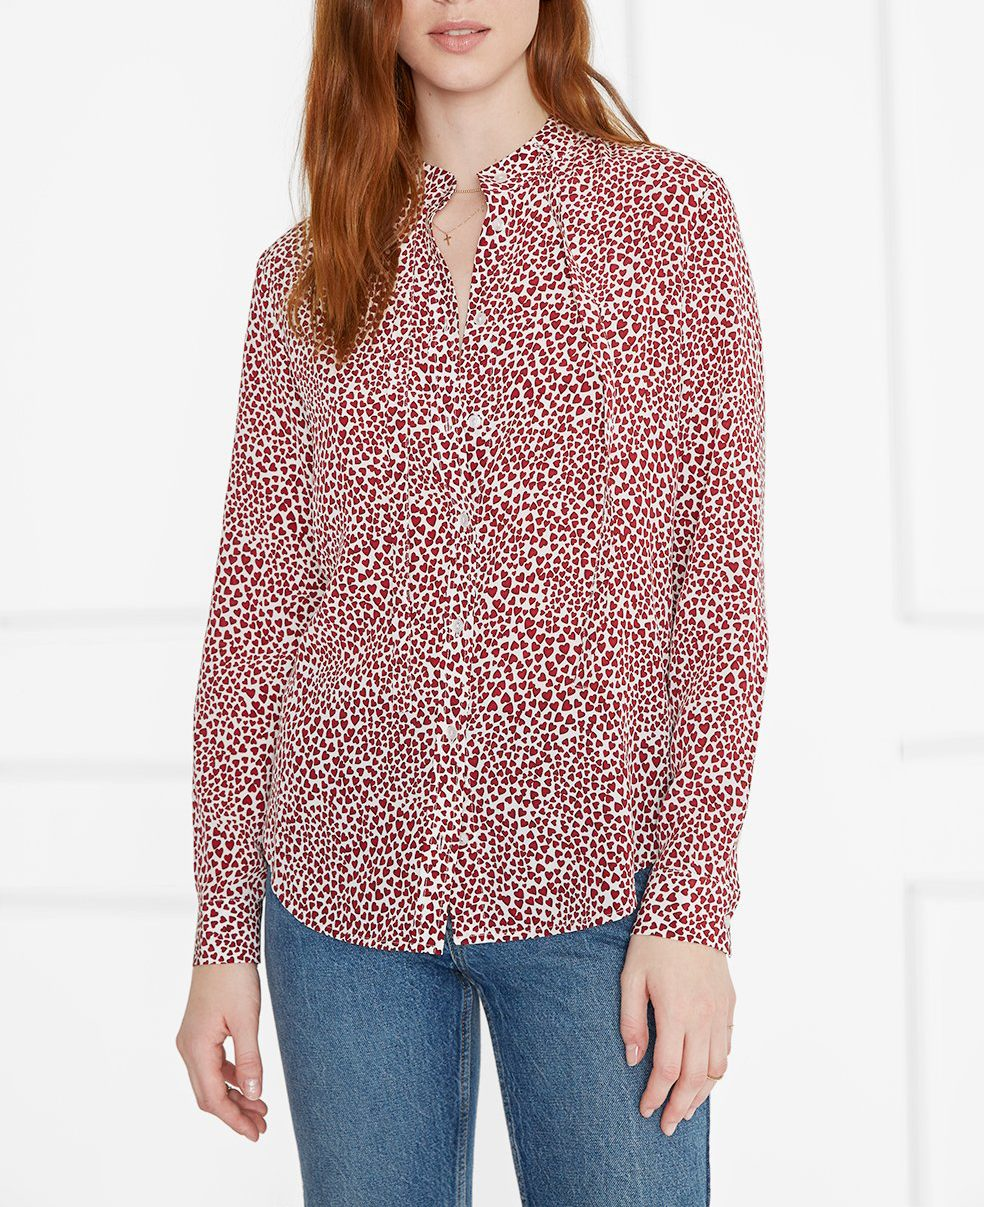 heart blouse